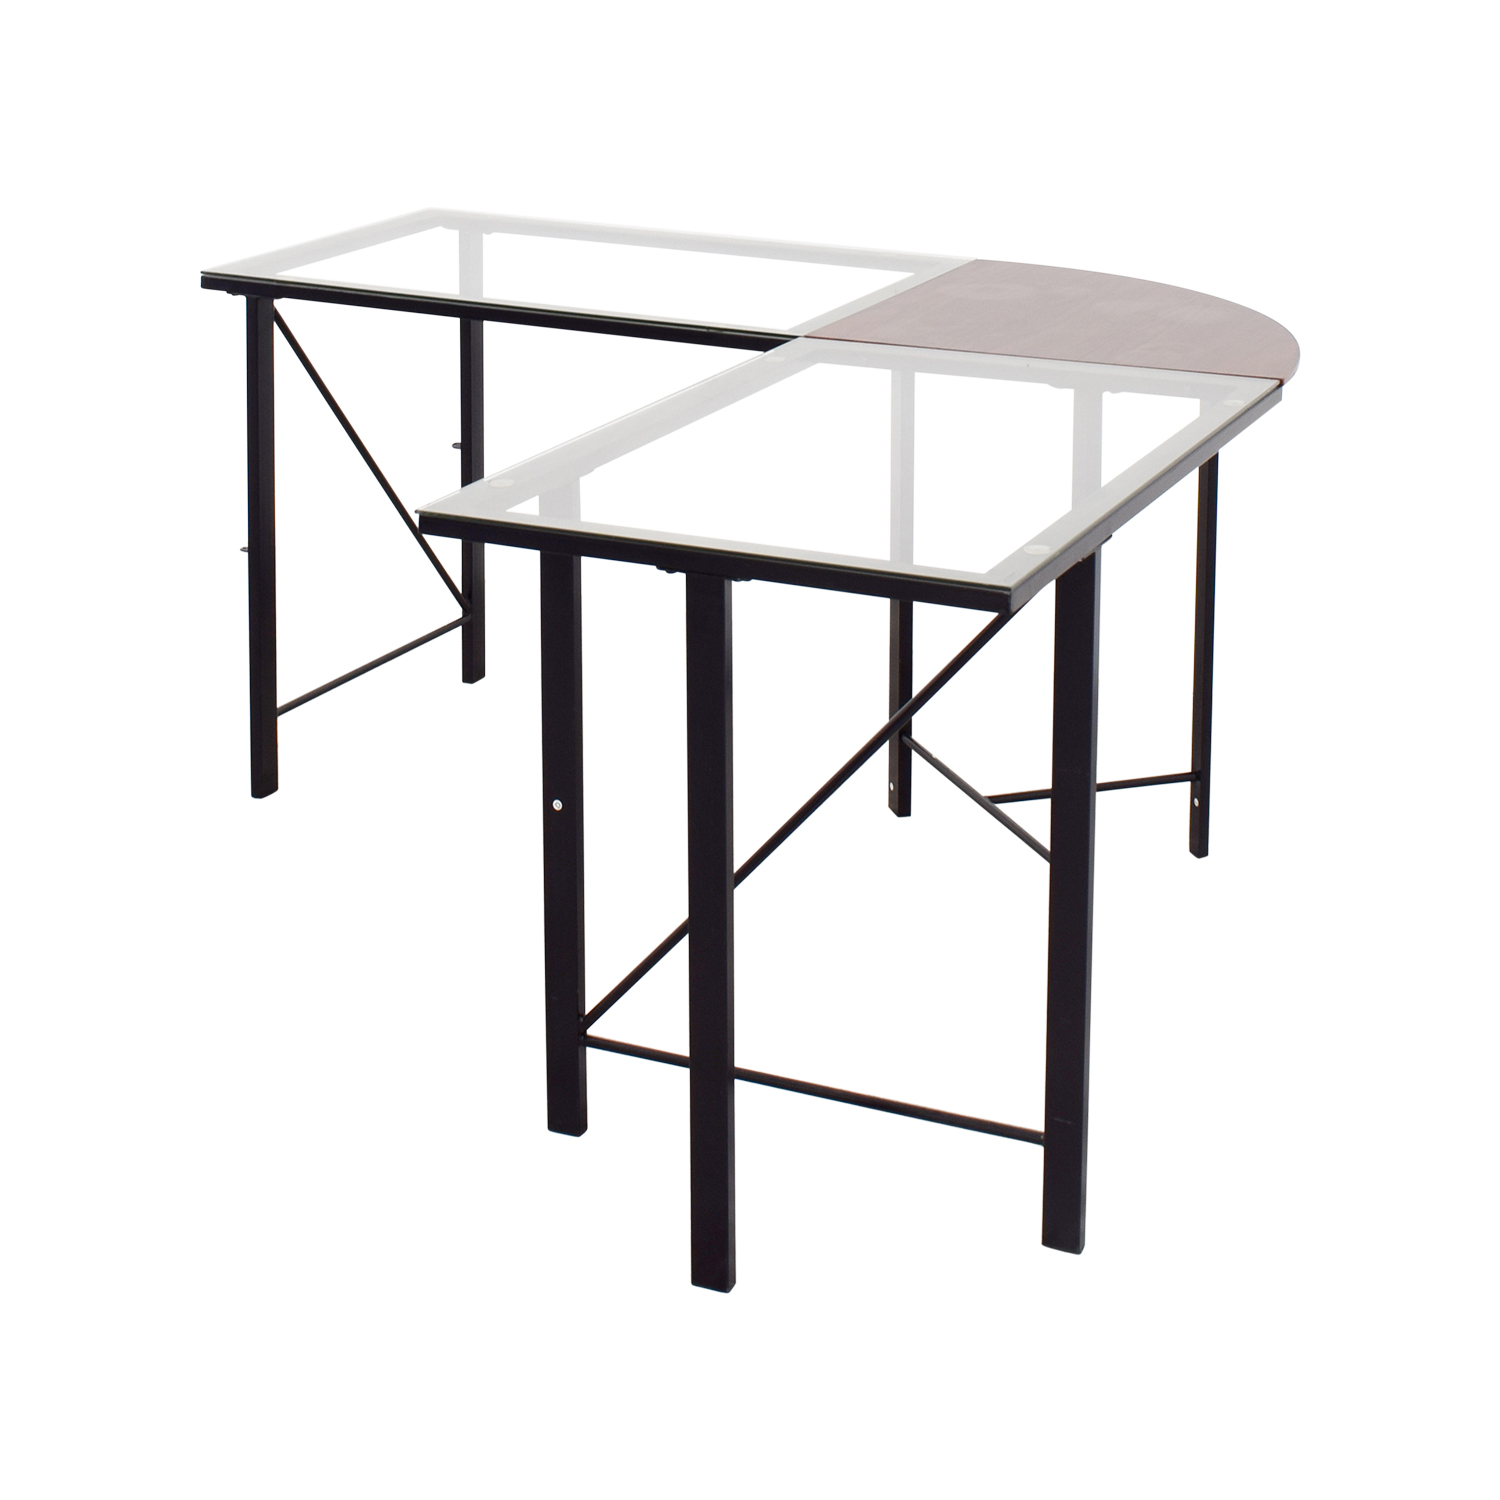 ... Altra Furniture Aden Corner Glass Computer Desk Altra Furniture ...